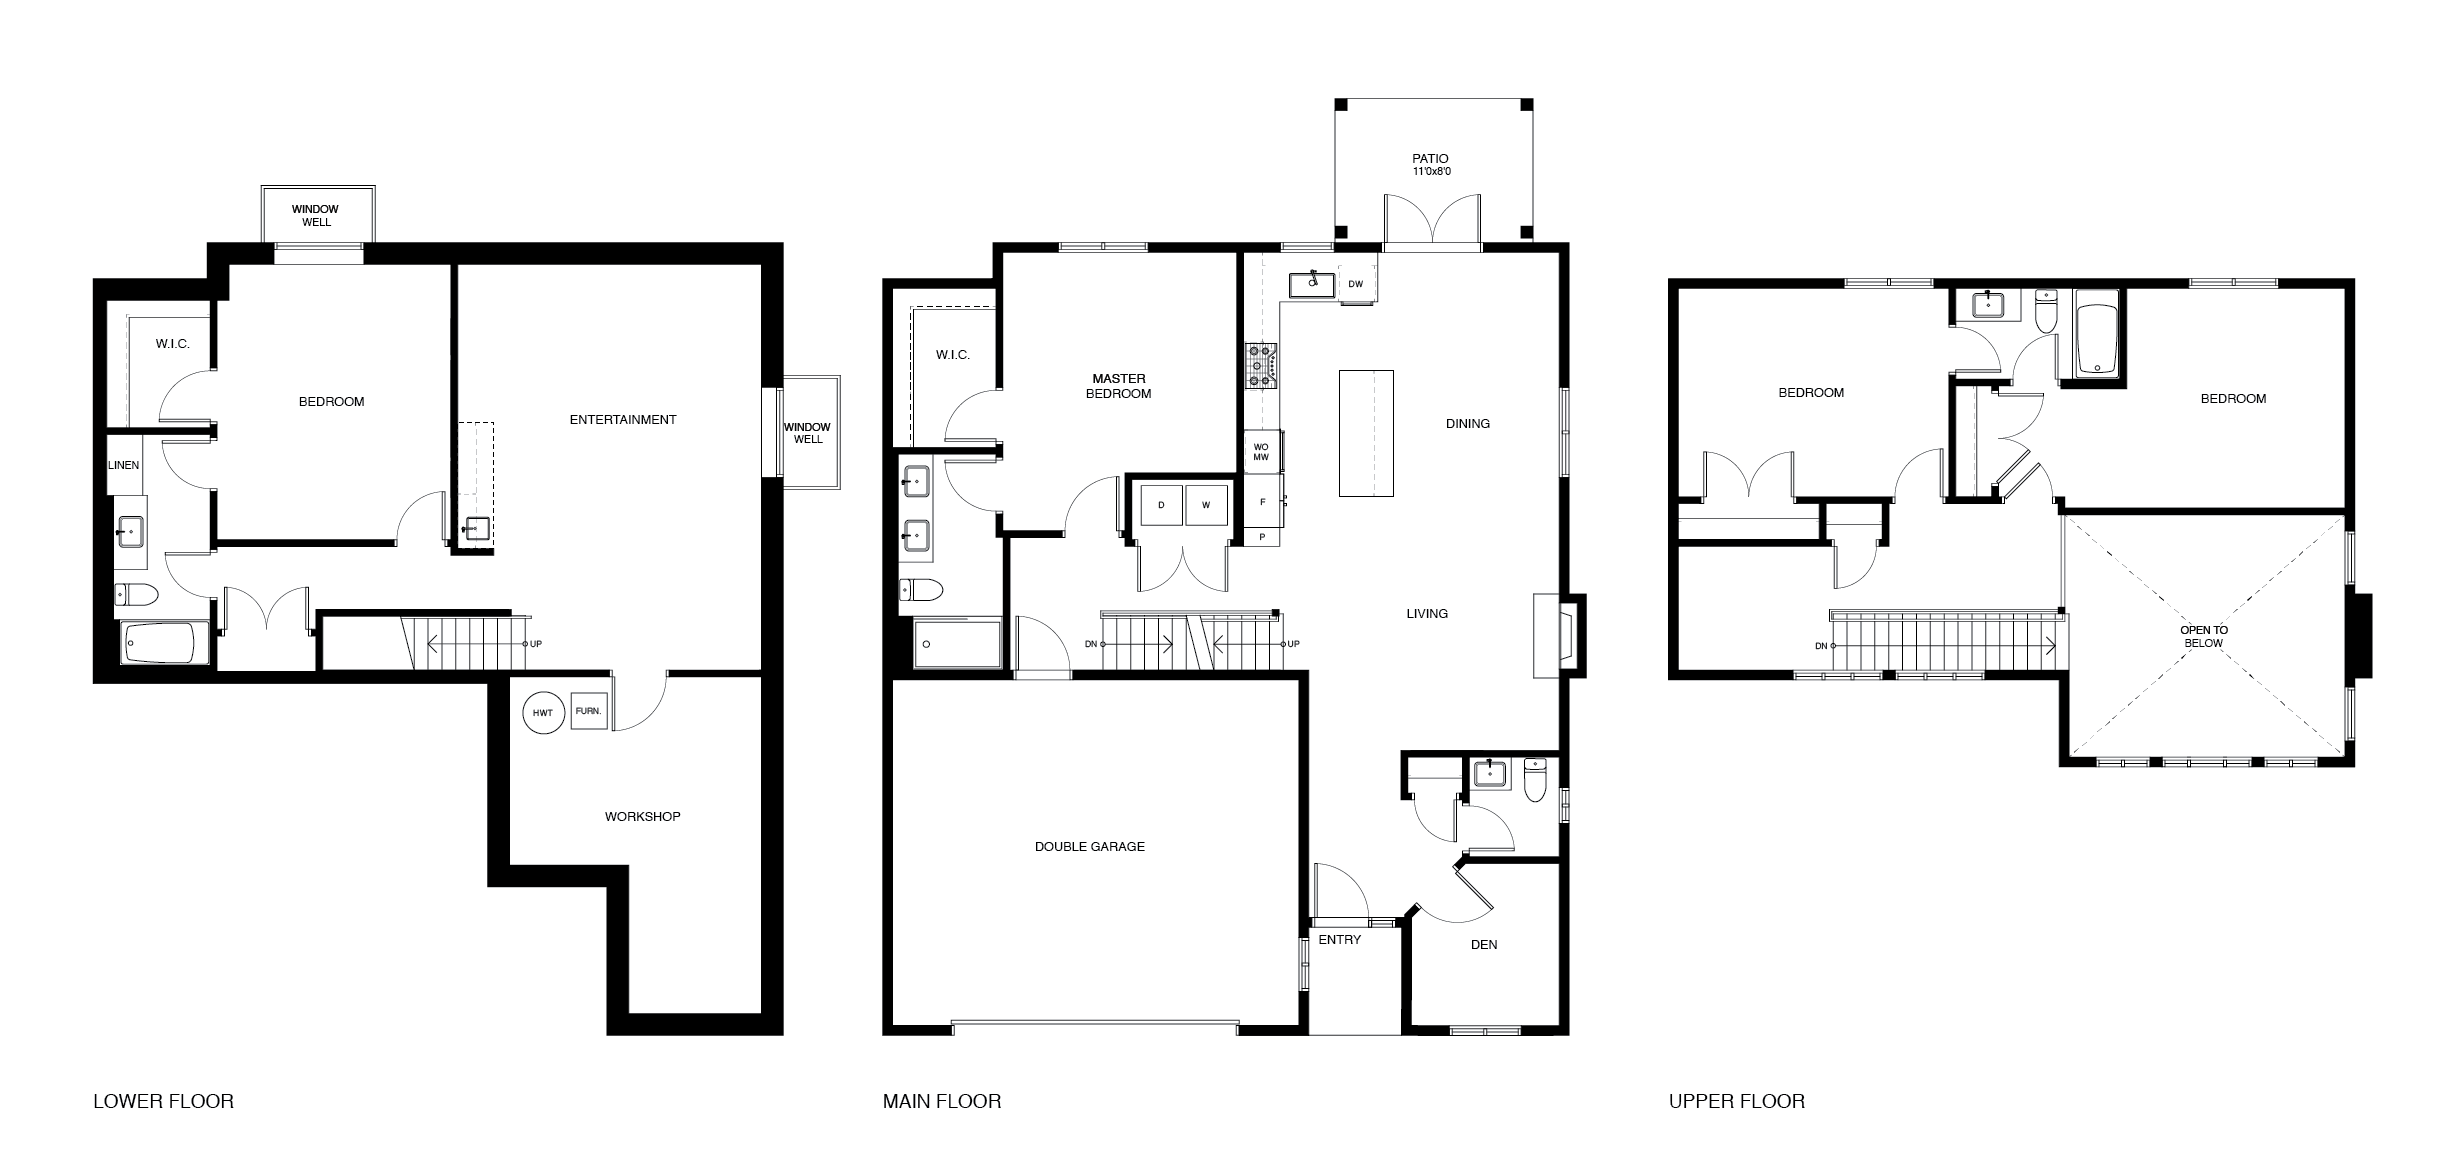 Floorplan - Unit E